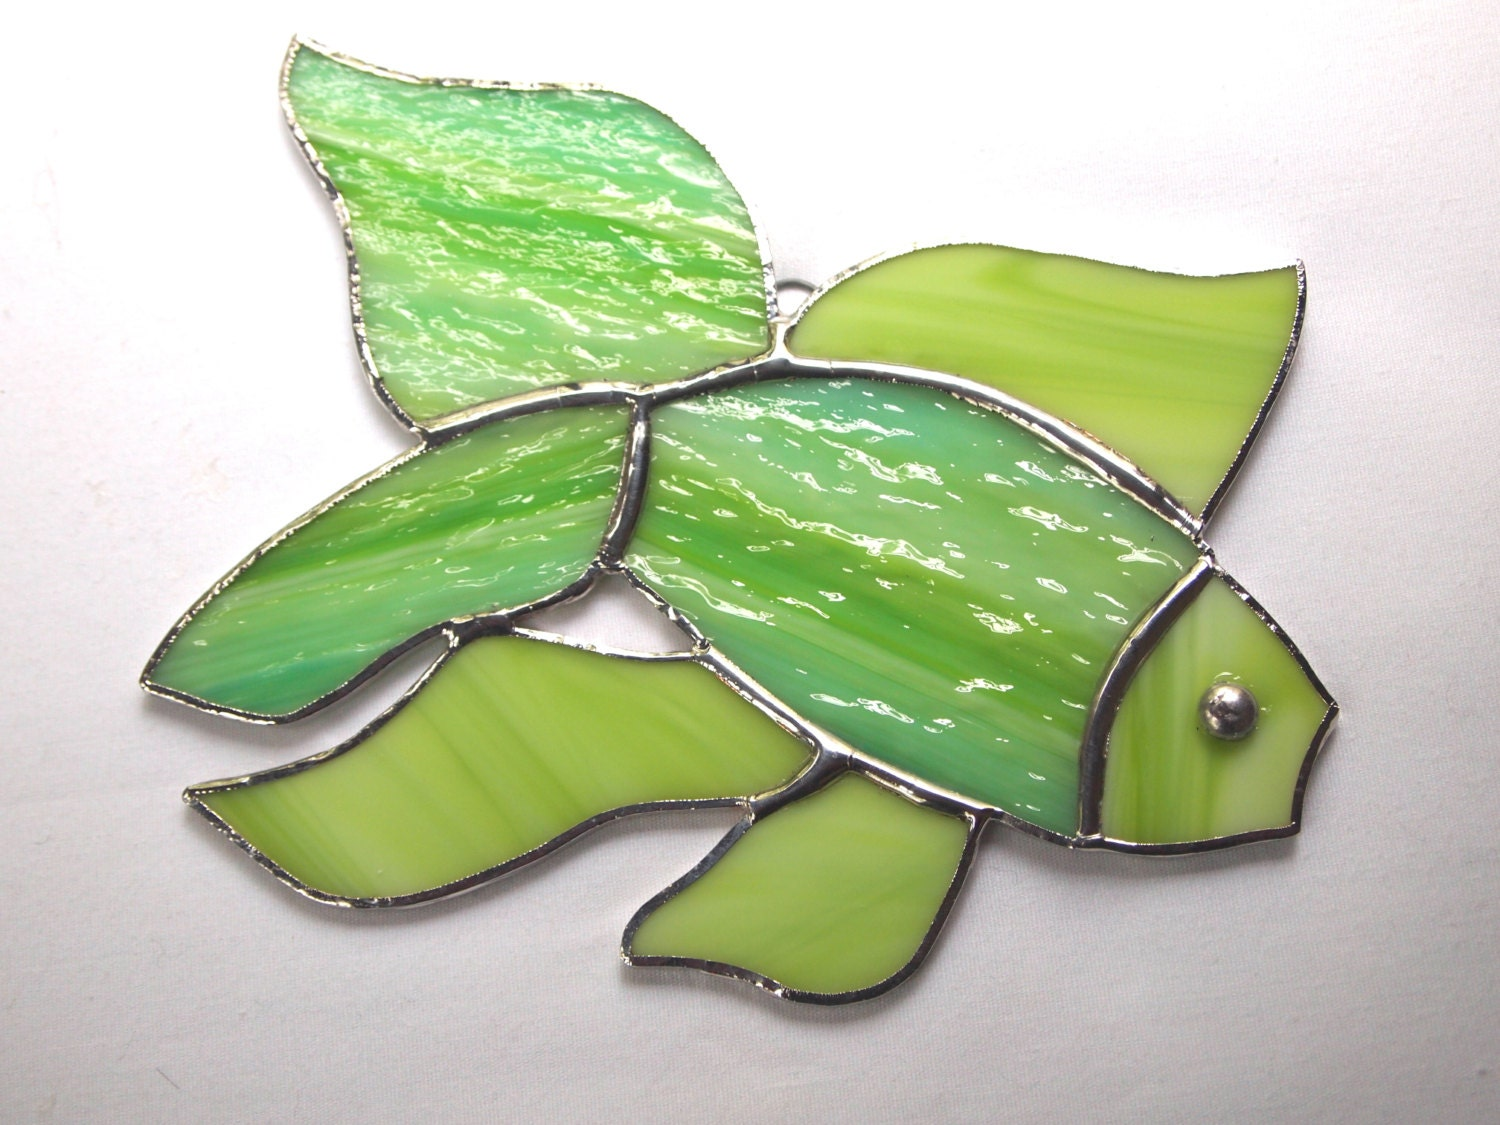 Stained glass fish suncatcher by glassofdistinction on etsy for Stained glass fish